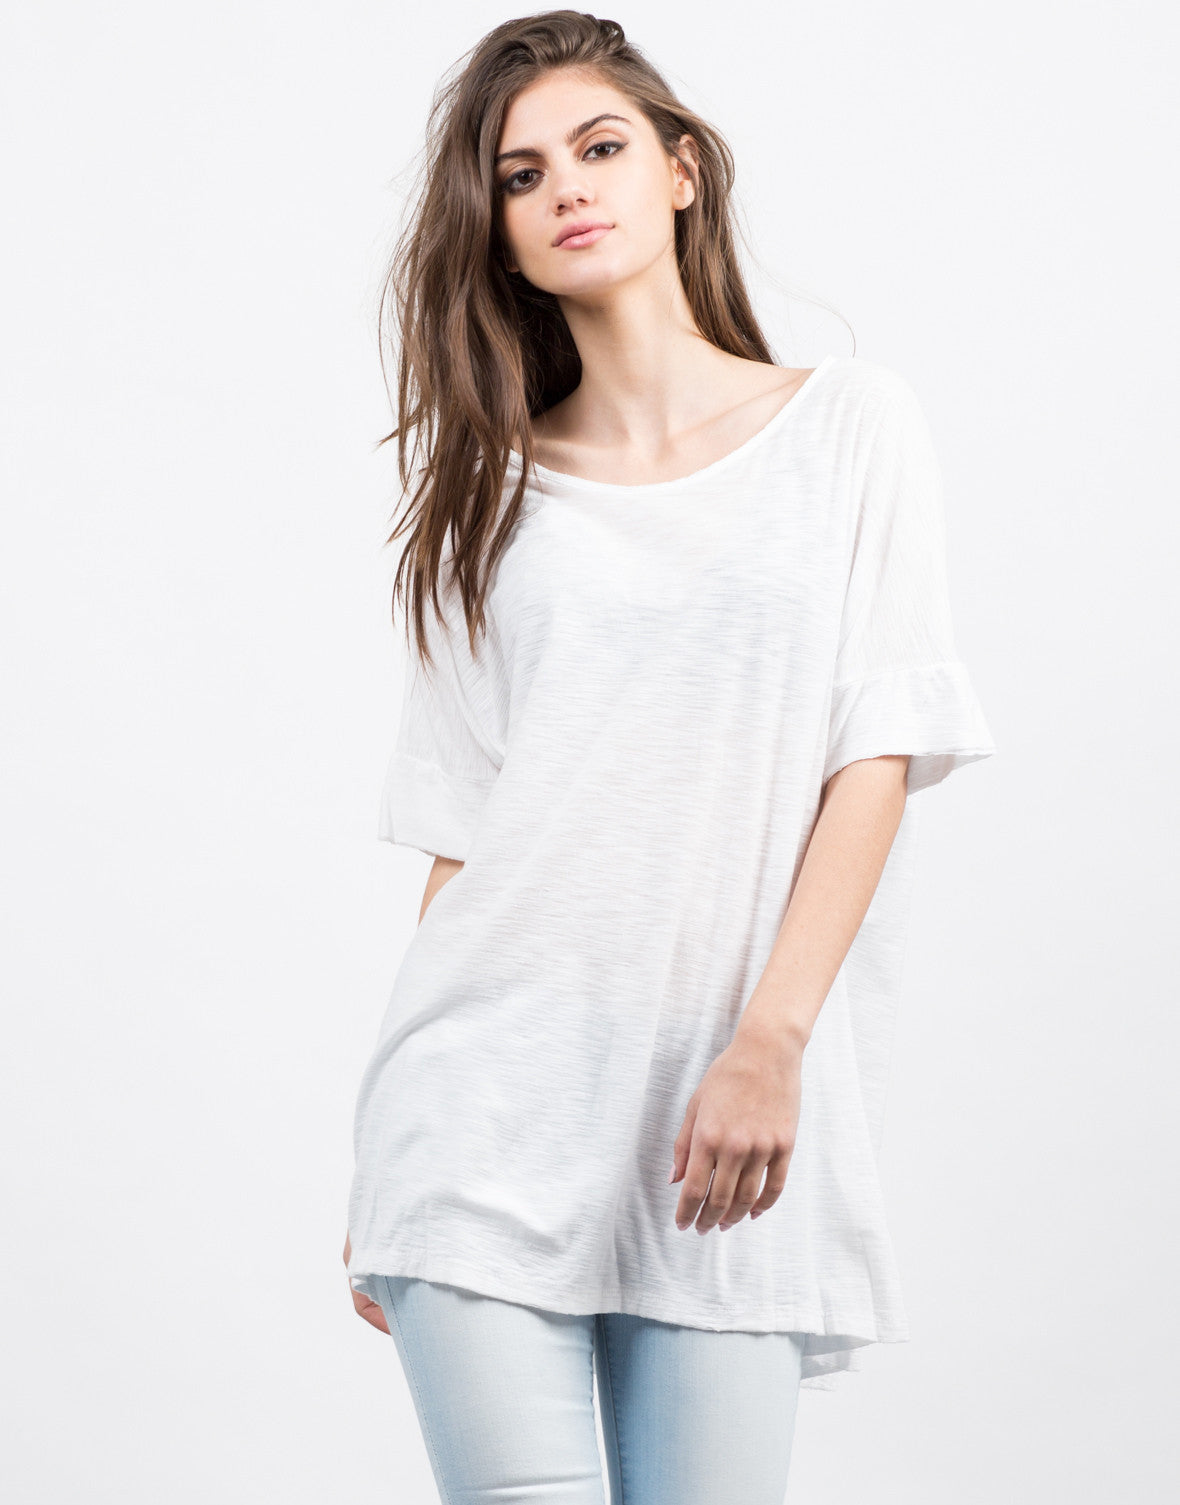 Front View of Oversized White Tee